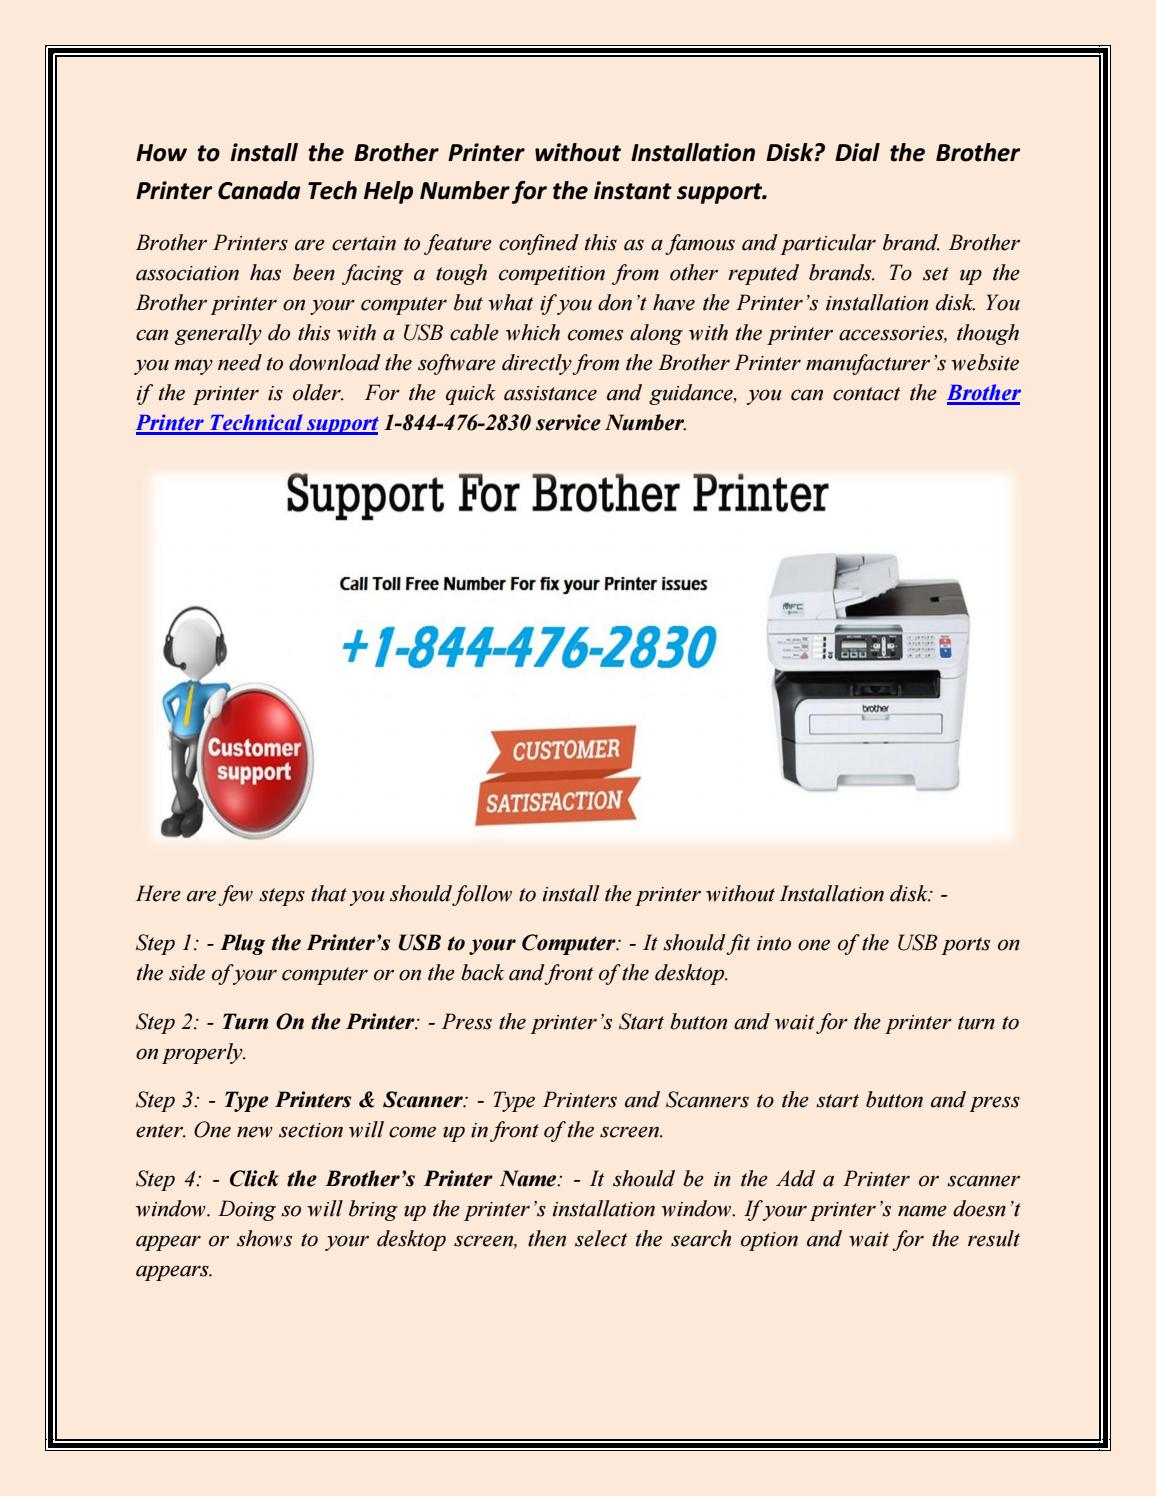 Contact Brother Printer 1-844-476-2830 customer service number